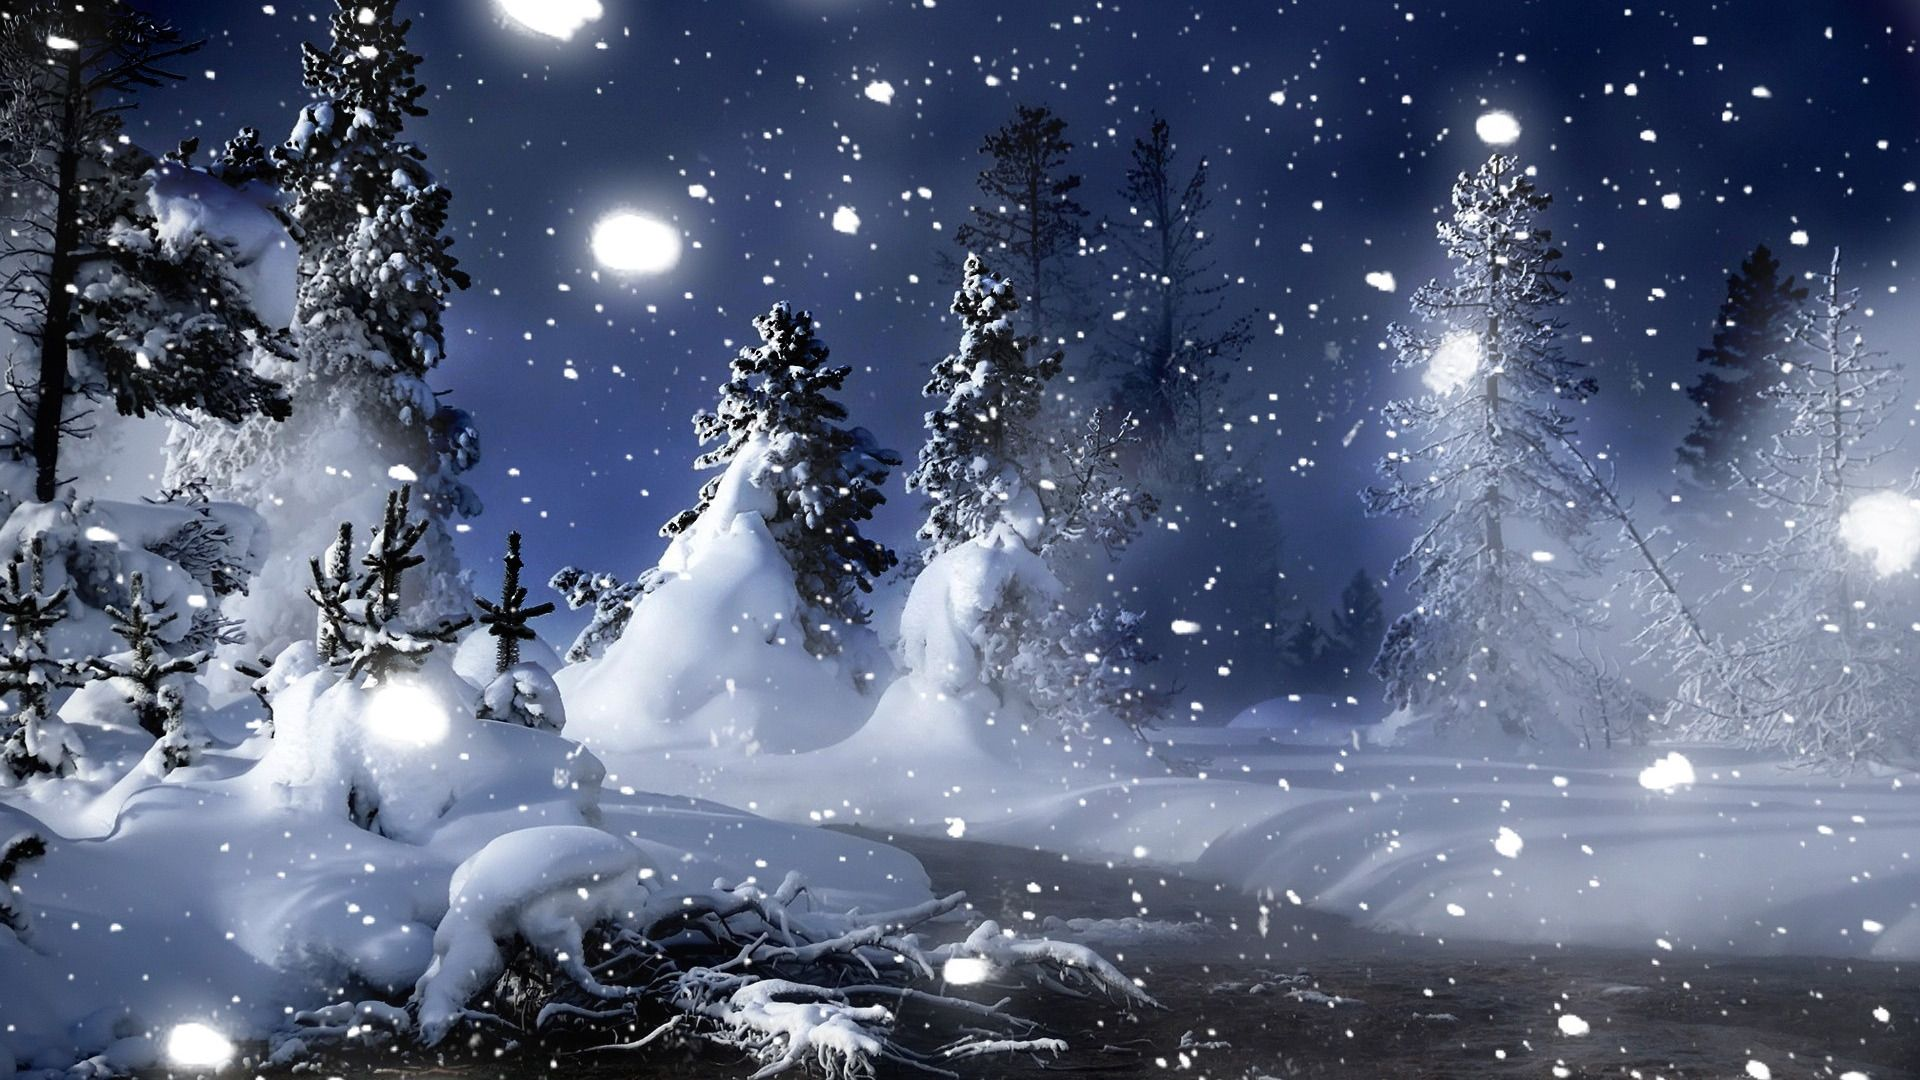 Winter Snow   Wallpaper High Definition High Quality 1920x1080